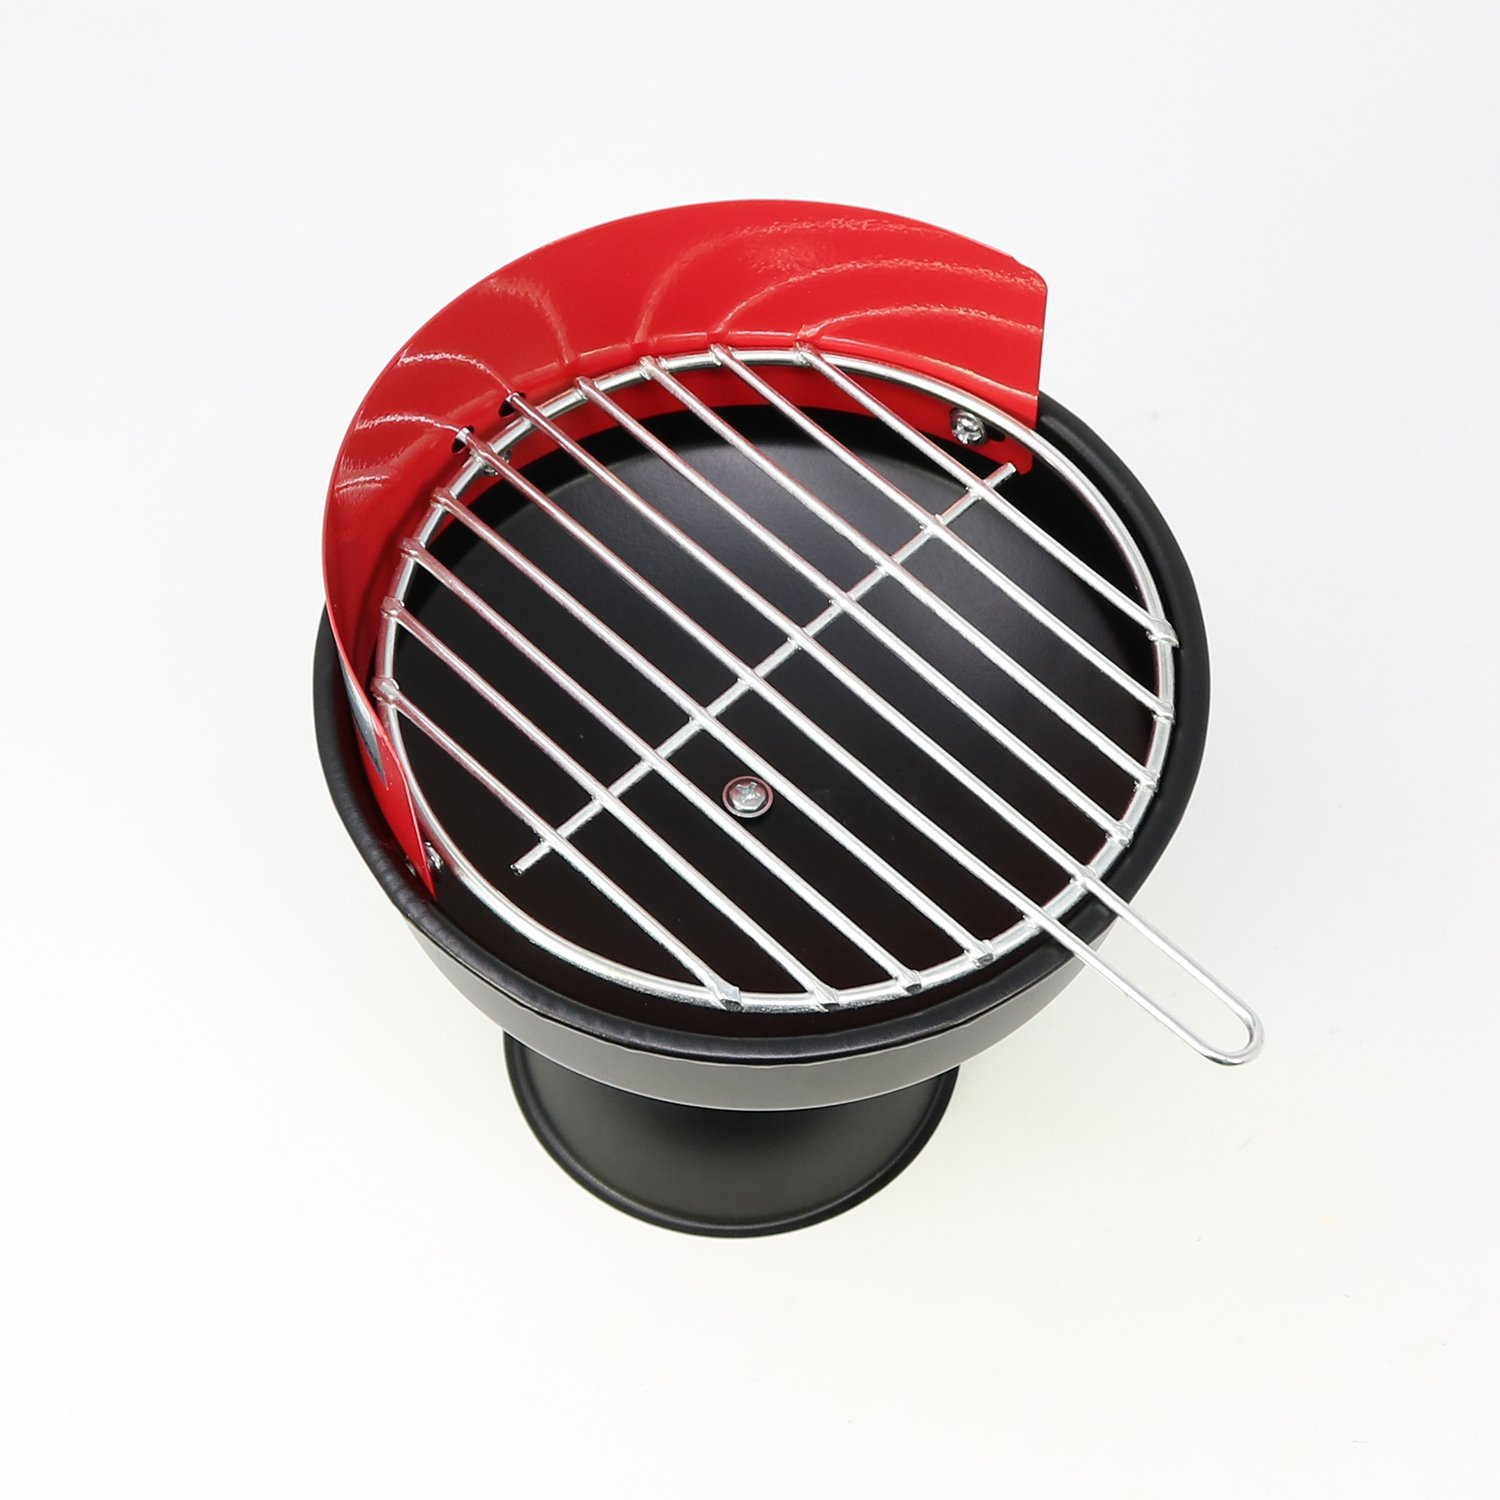 COM-FOUR/® Funny Metal Ashtray for Outdoor Use in Mini Grill Design 1 piece